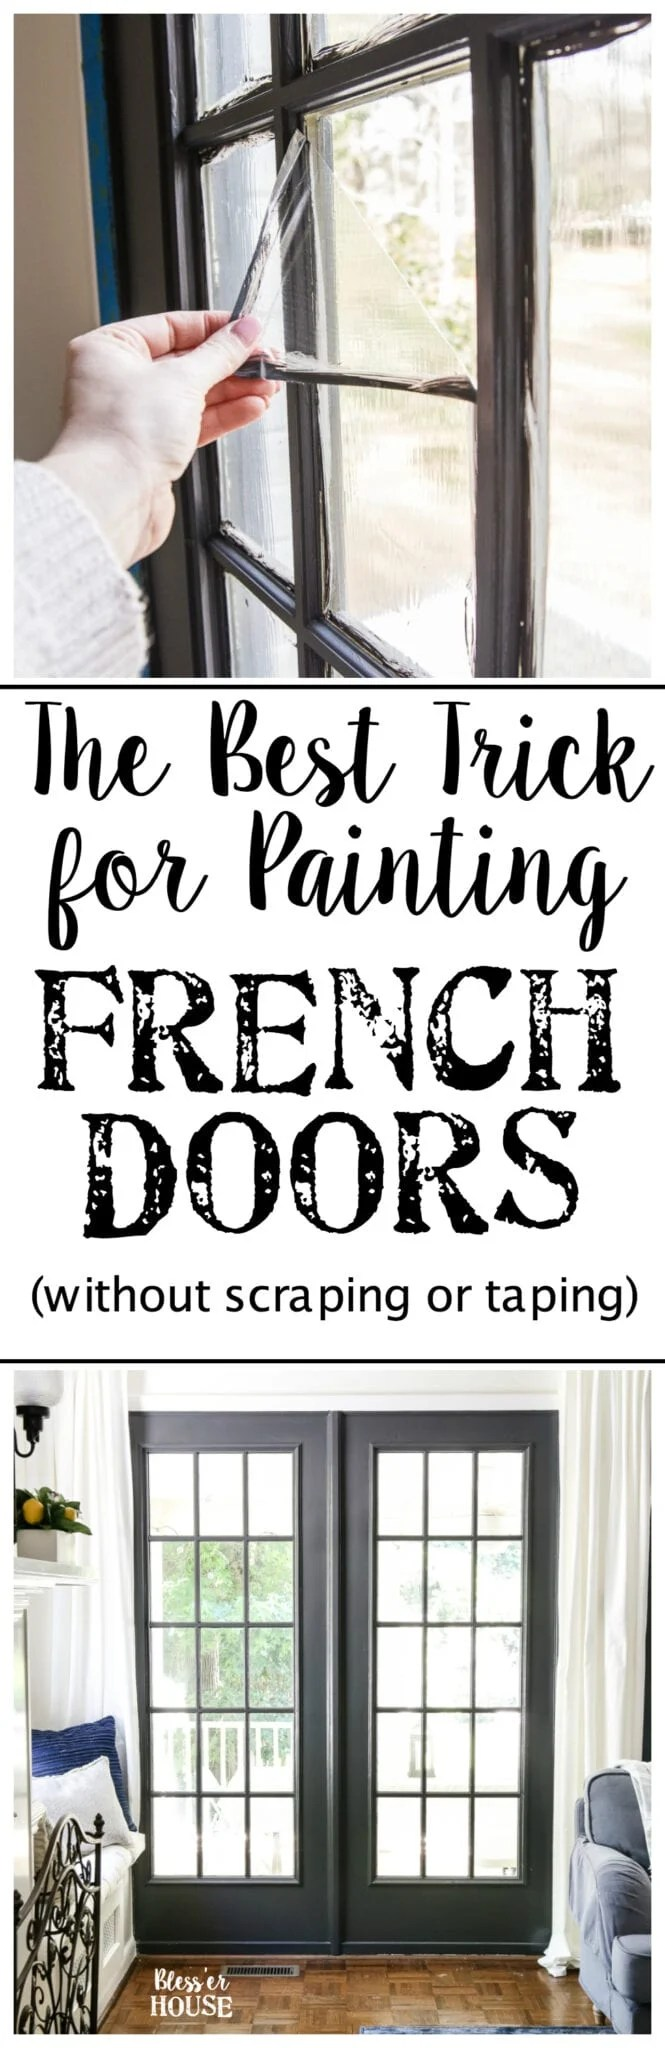 Top 10 Home and DIY Blog Posts of 2018 | The Best Trick for Painting French Doors and Windows